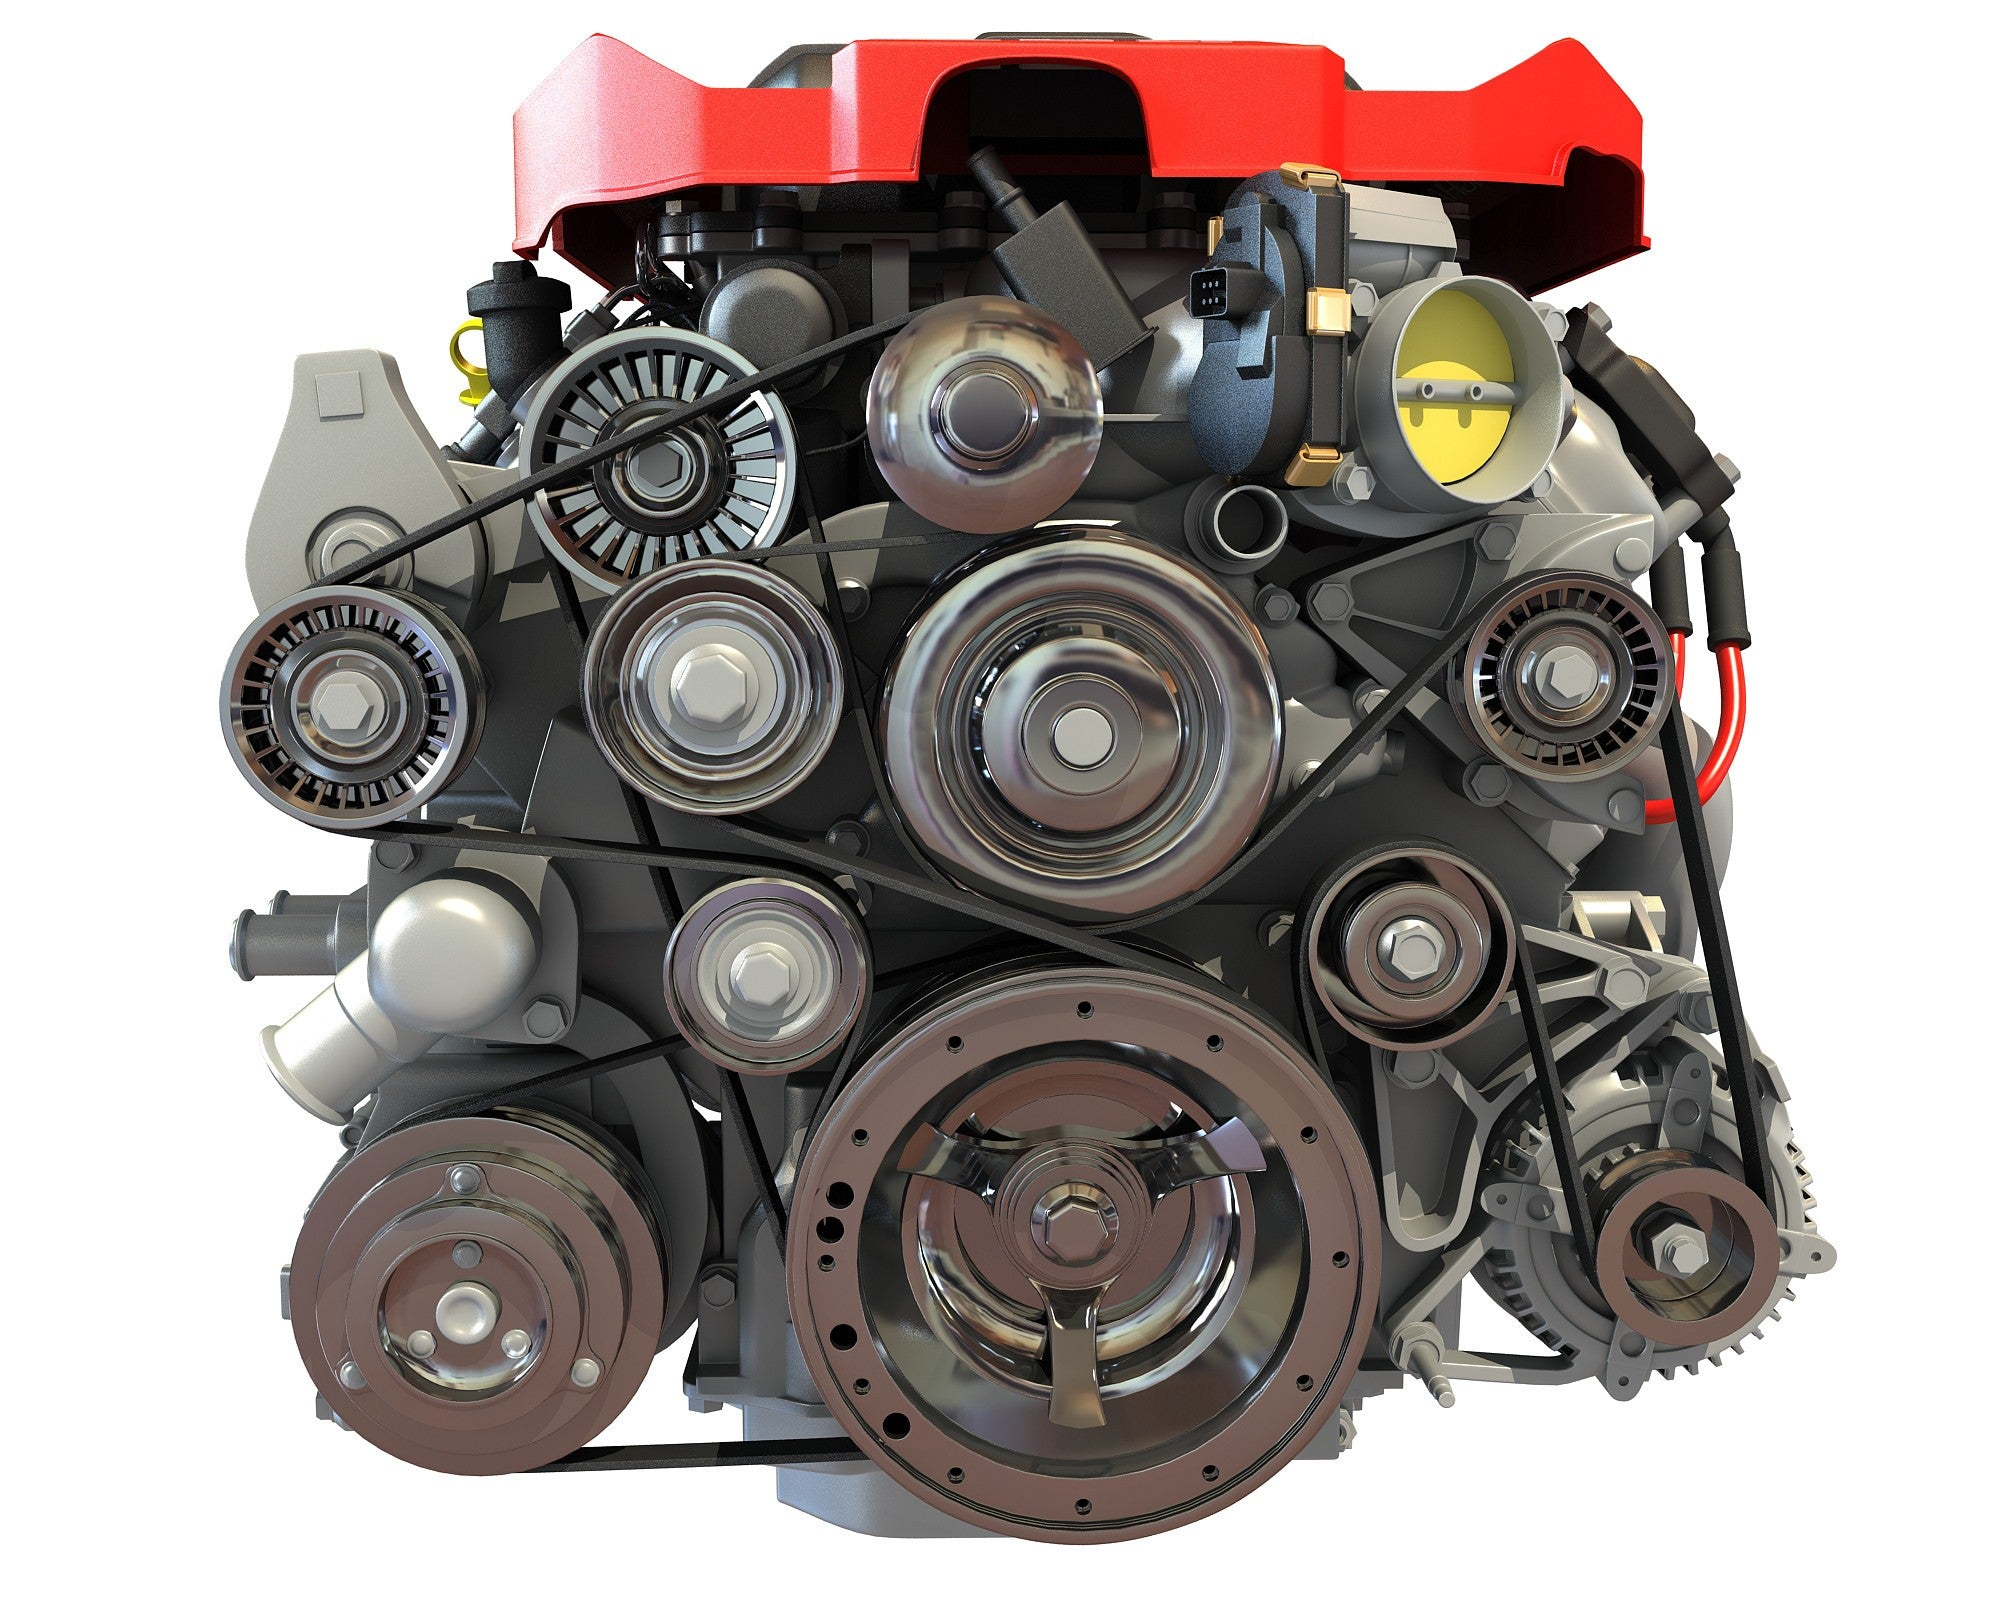 Chevrolet V8 3D Engine Model